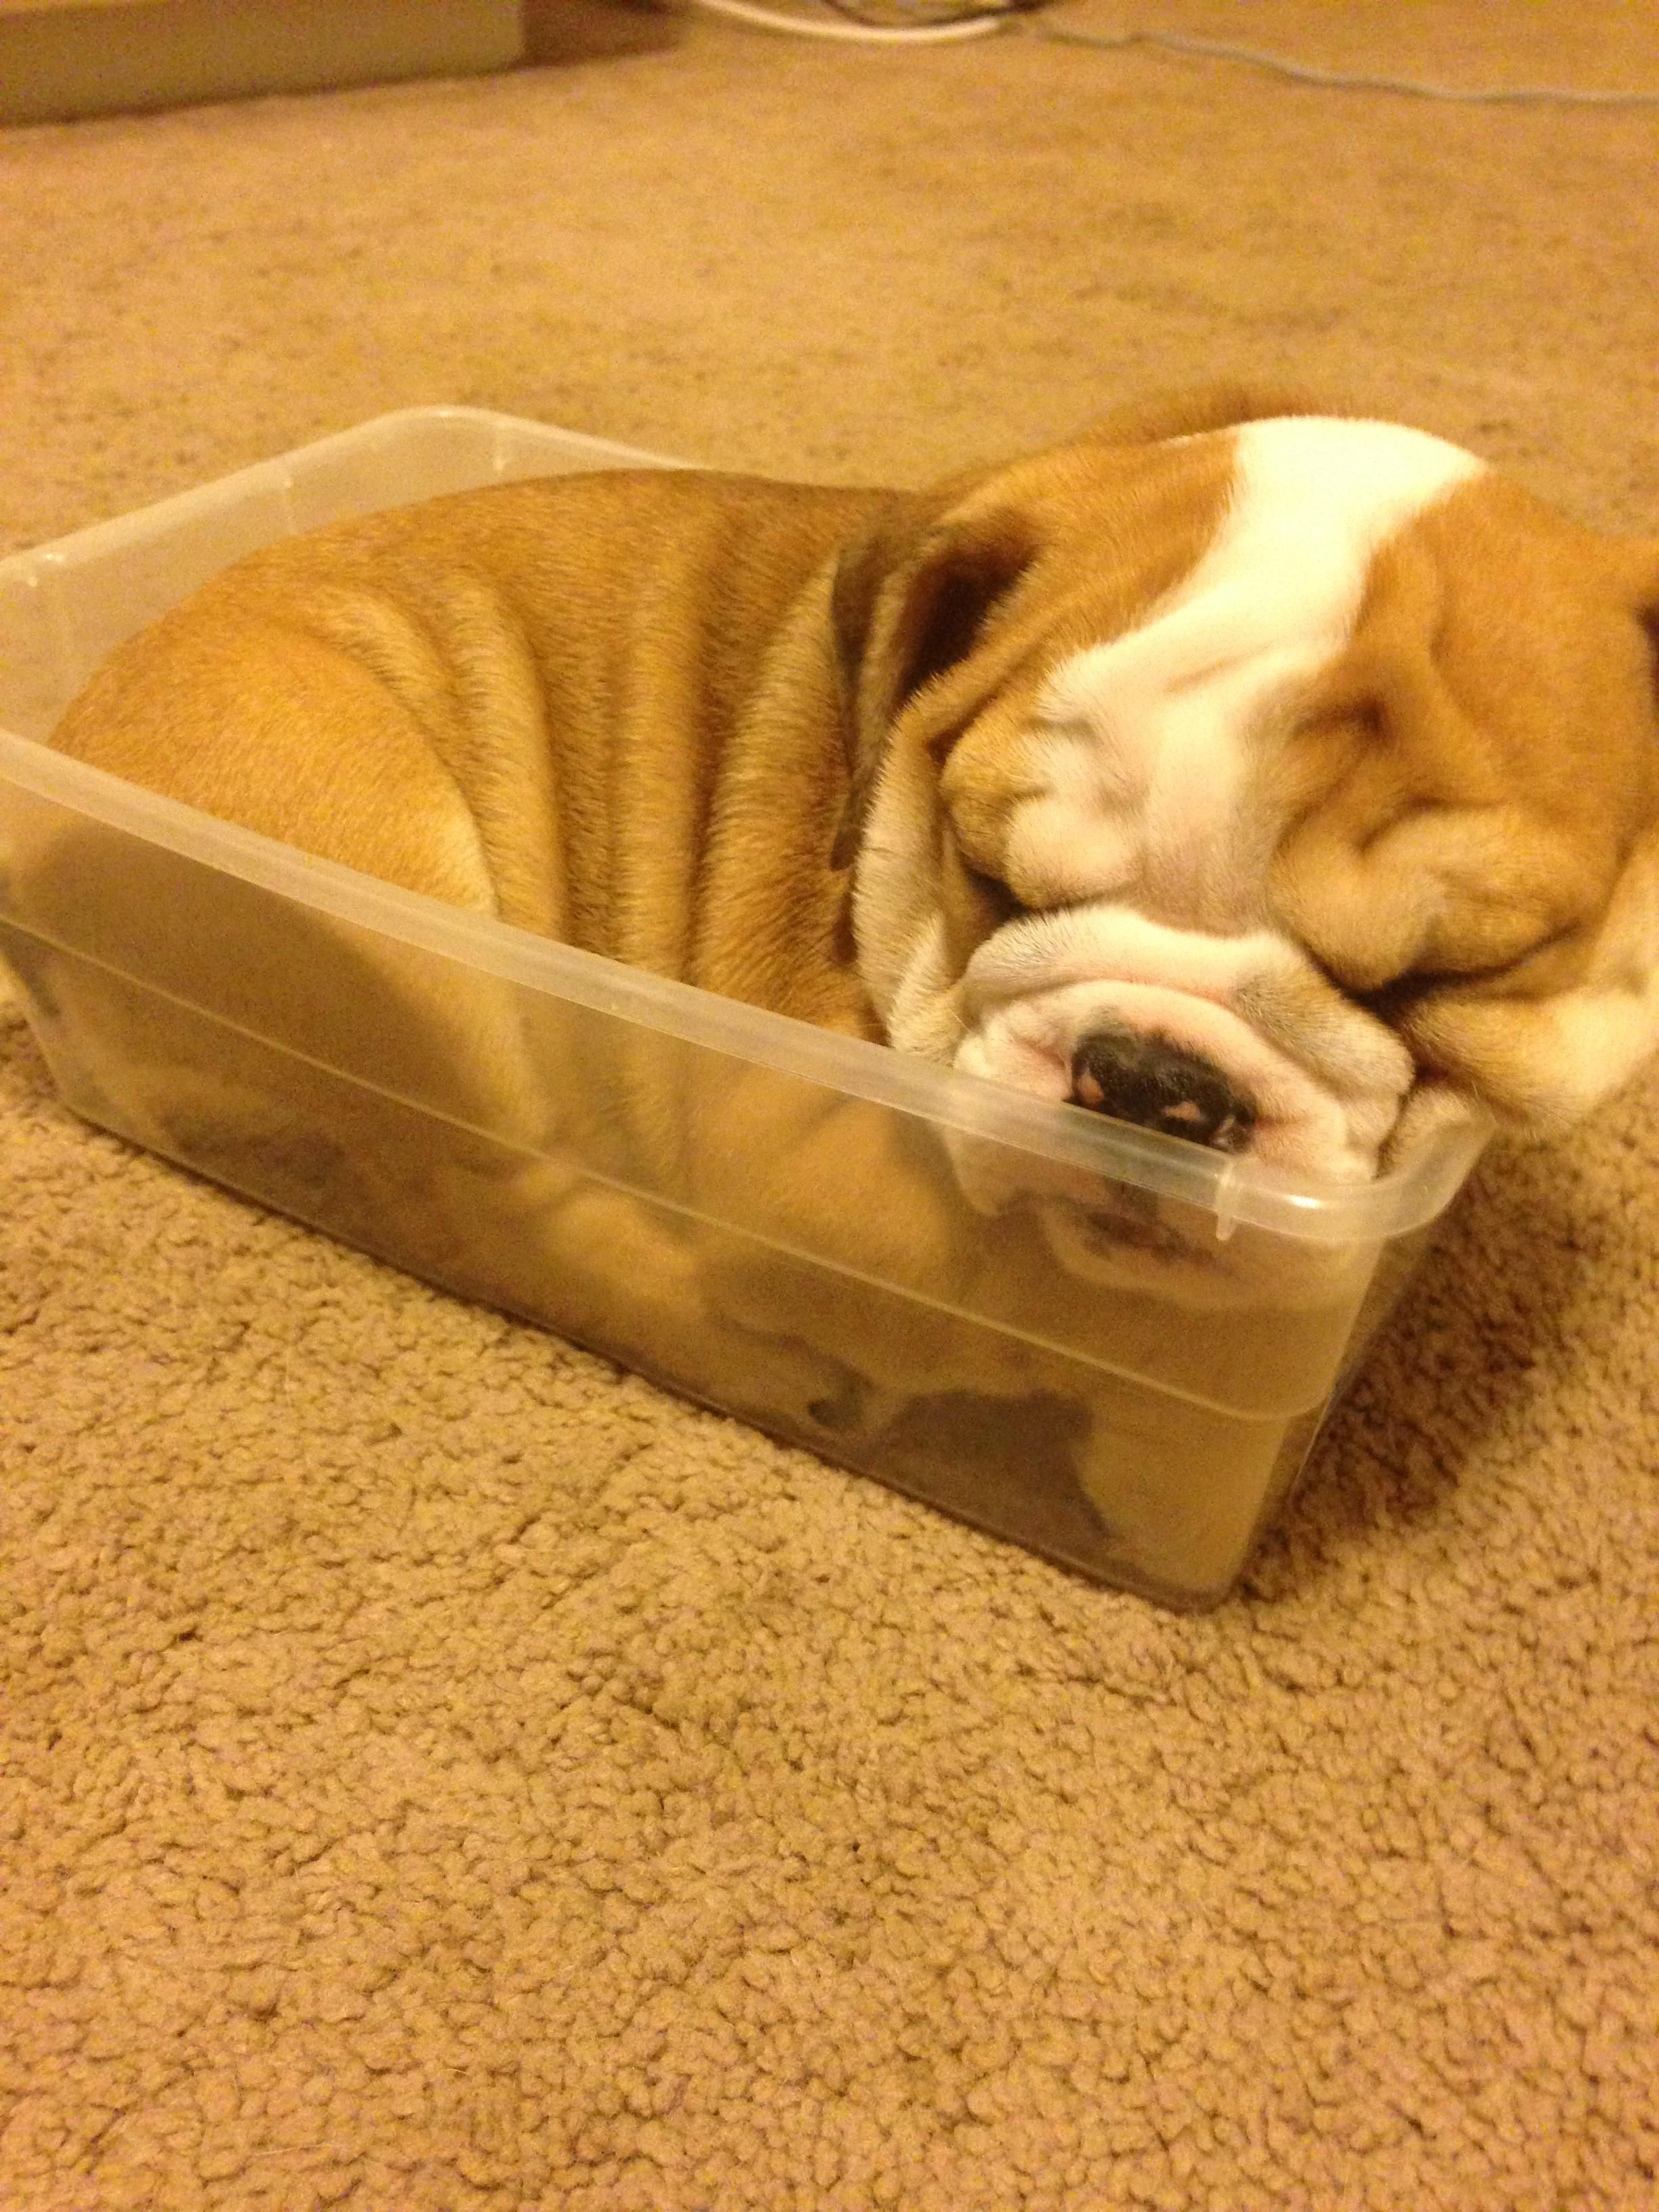 My english bulldog sleeping in a container when she was a puppy